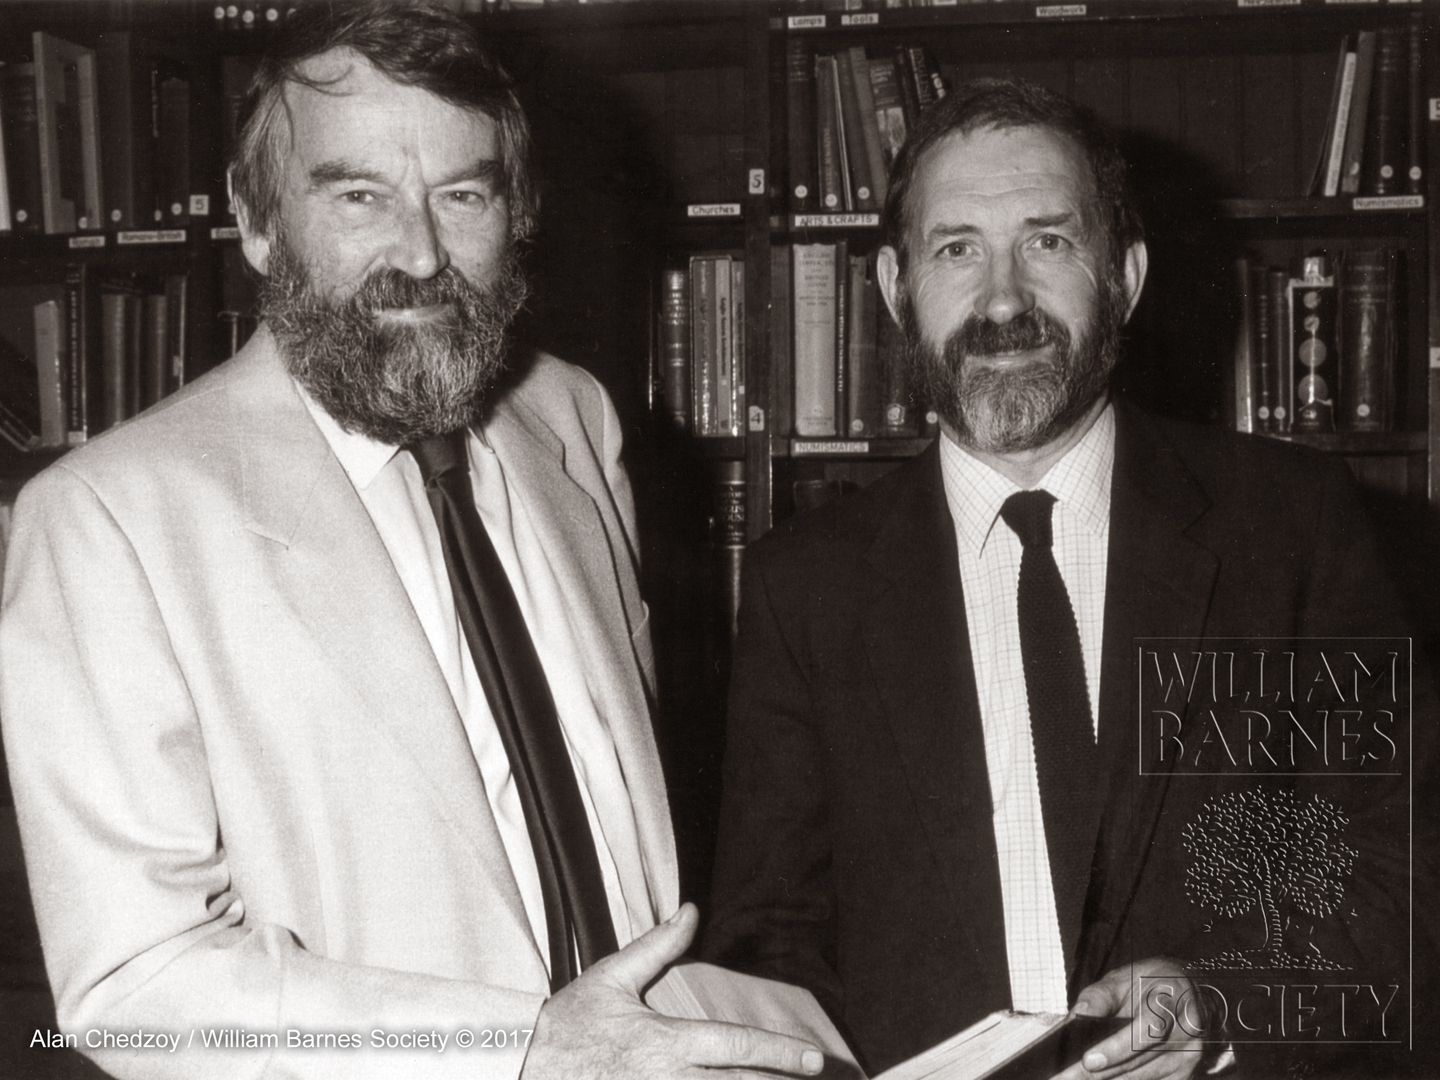 John Fowles and Alan Chedzoy